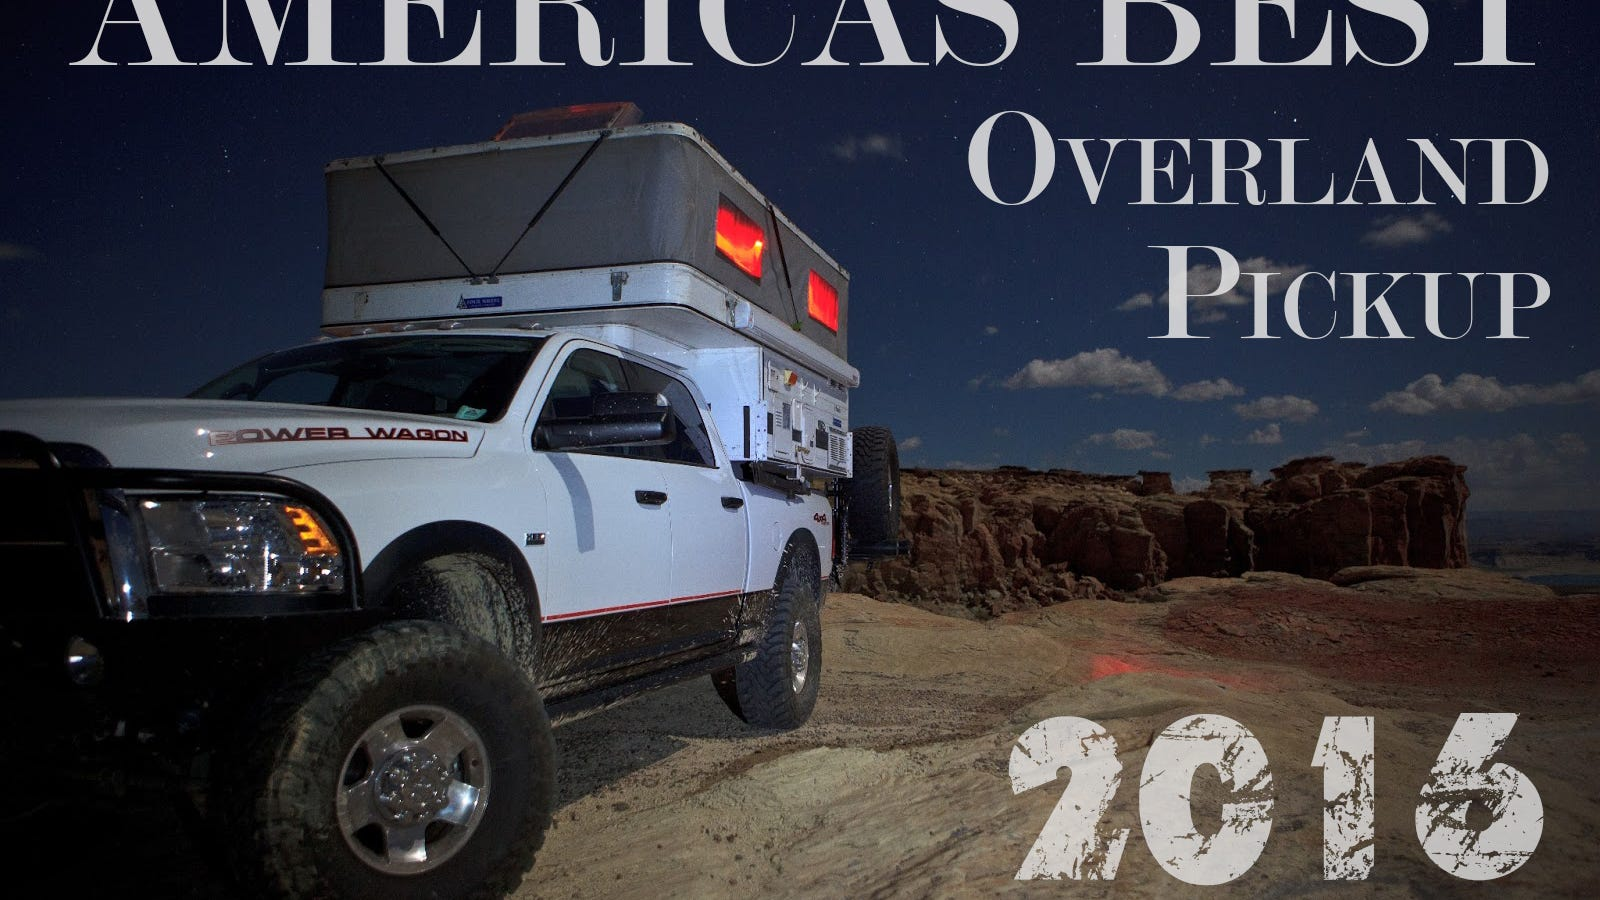 Best Overland Vehicles >> Americas Best Overland Vehicle - Full Size Trucks